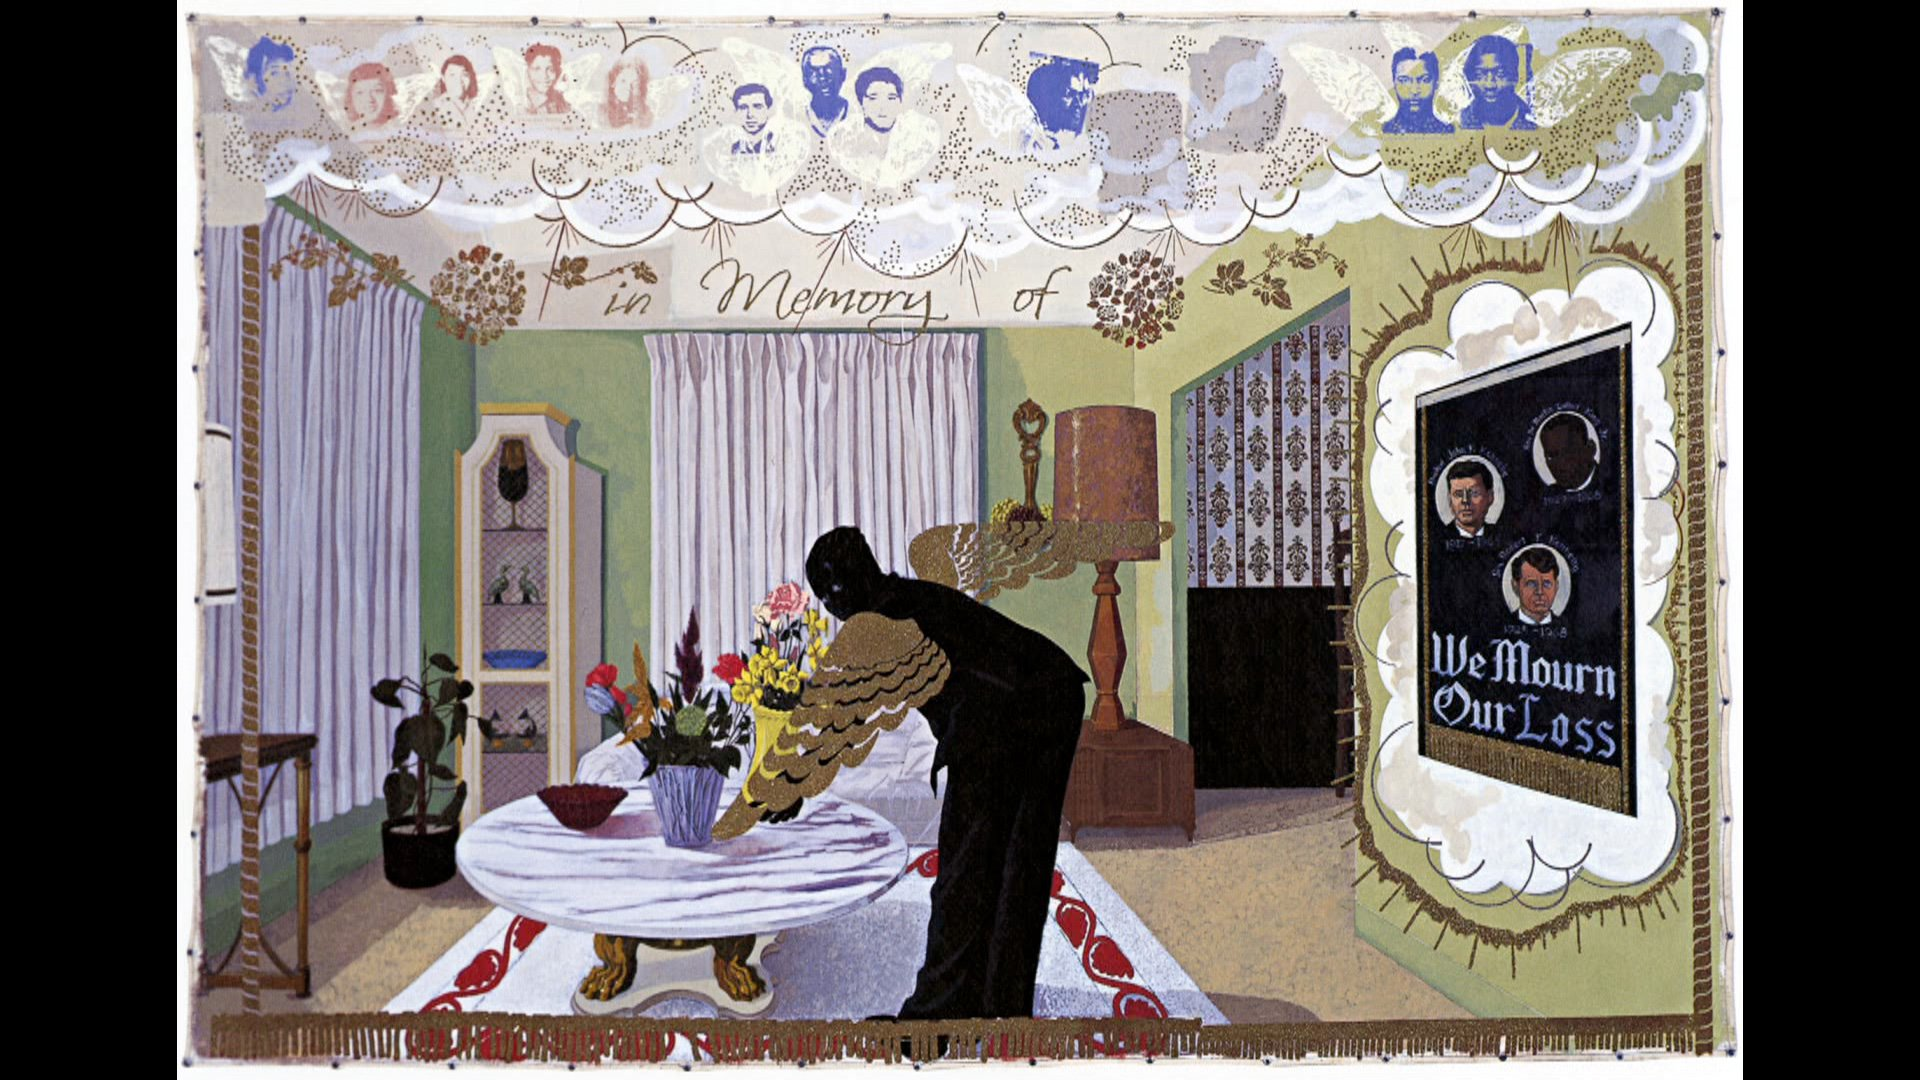 Artist Kerry James Marshall